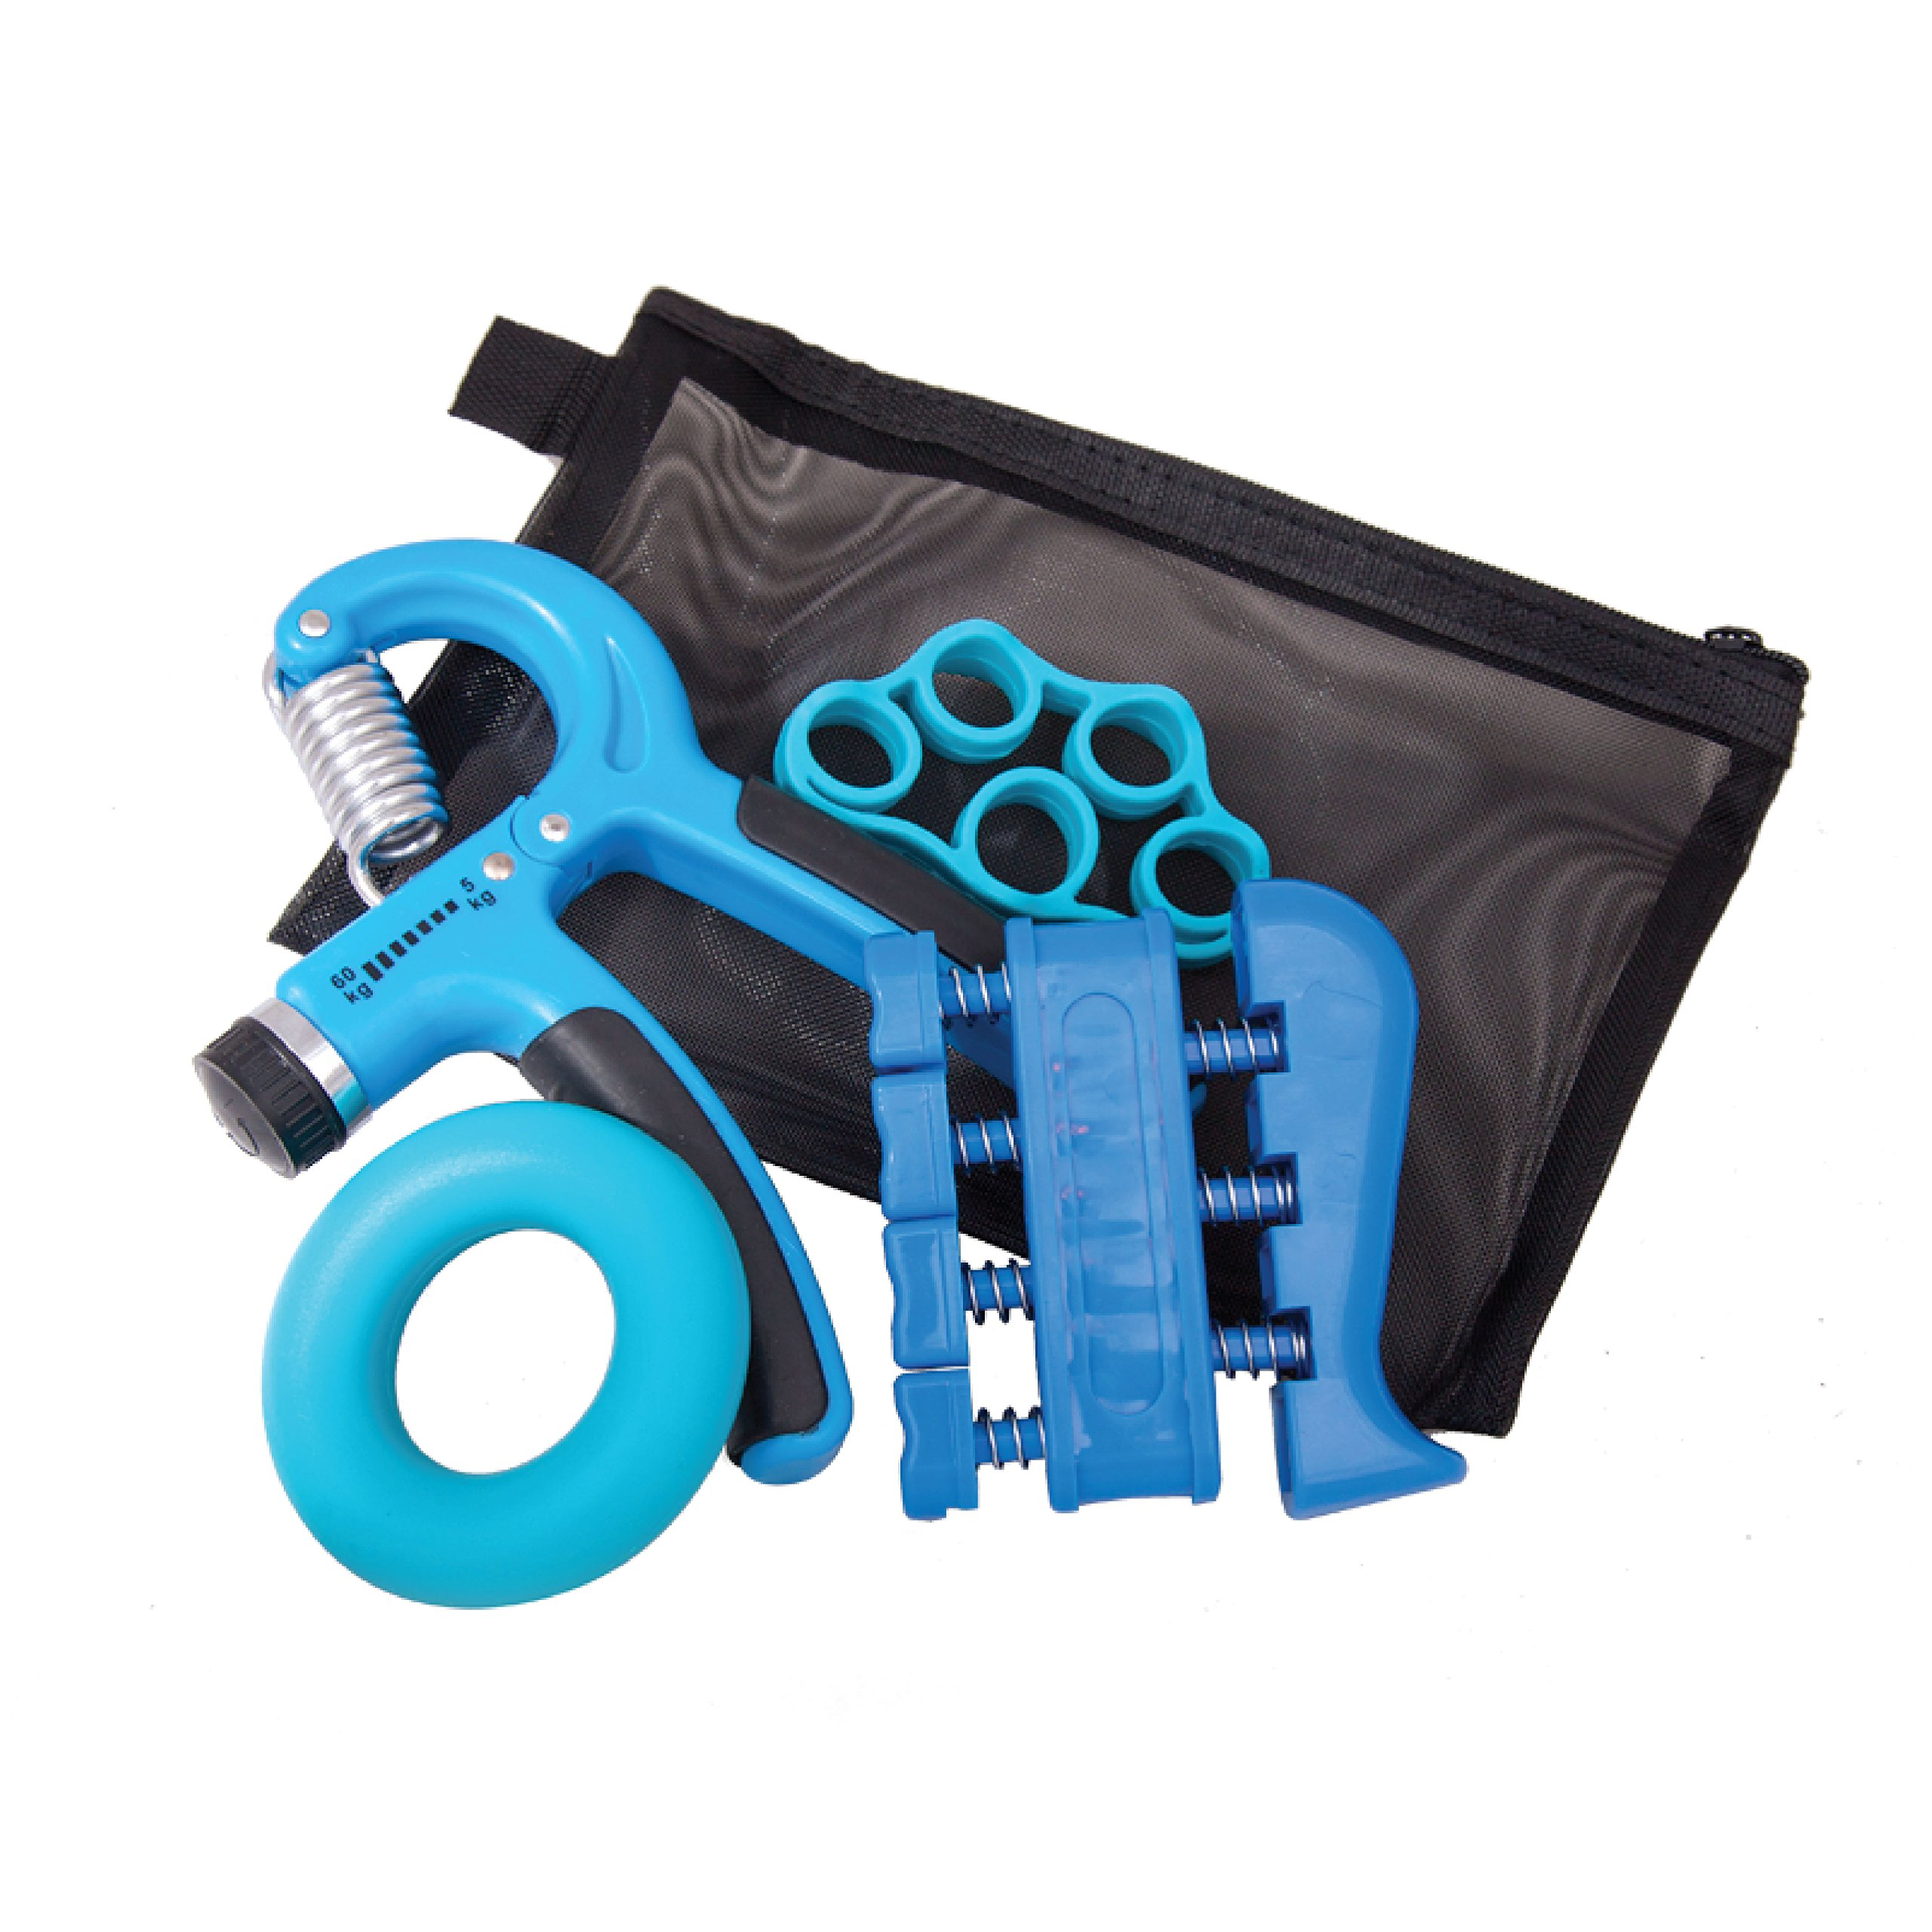 Hand Grip Strength and Forearm Trainer 4-Pack Bundle: Resistance Grip Strengthener, Finger Trainer, Finger Exerciser Stretcher, Grip Ring | Ideal for Athletes, Therapy for Arthritis, Carpal Tunnel by Fit Grip (Image #1)